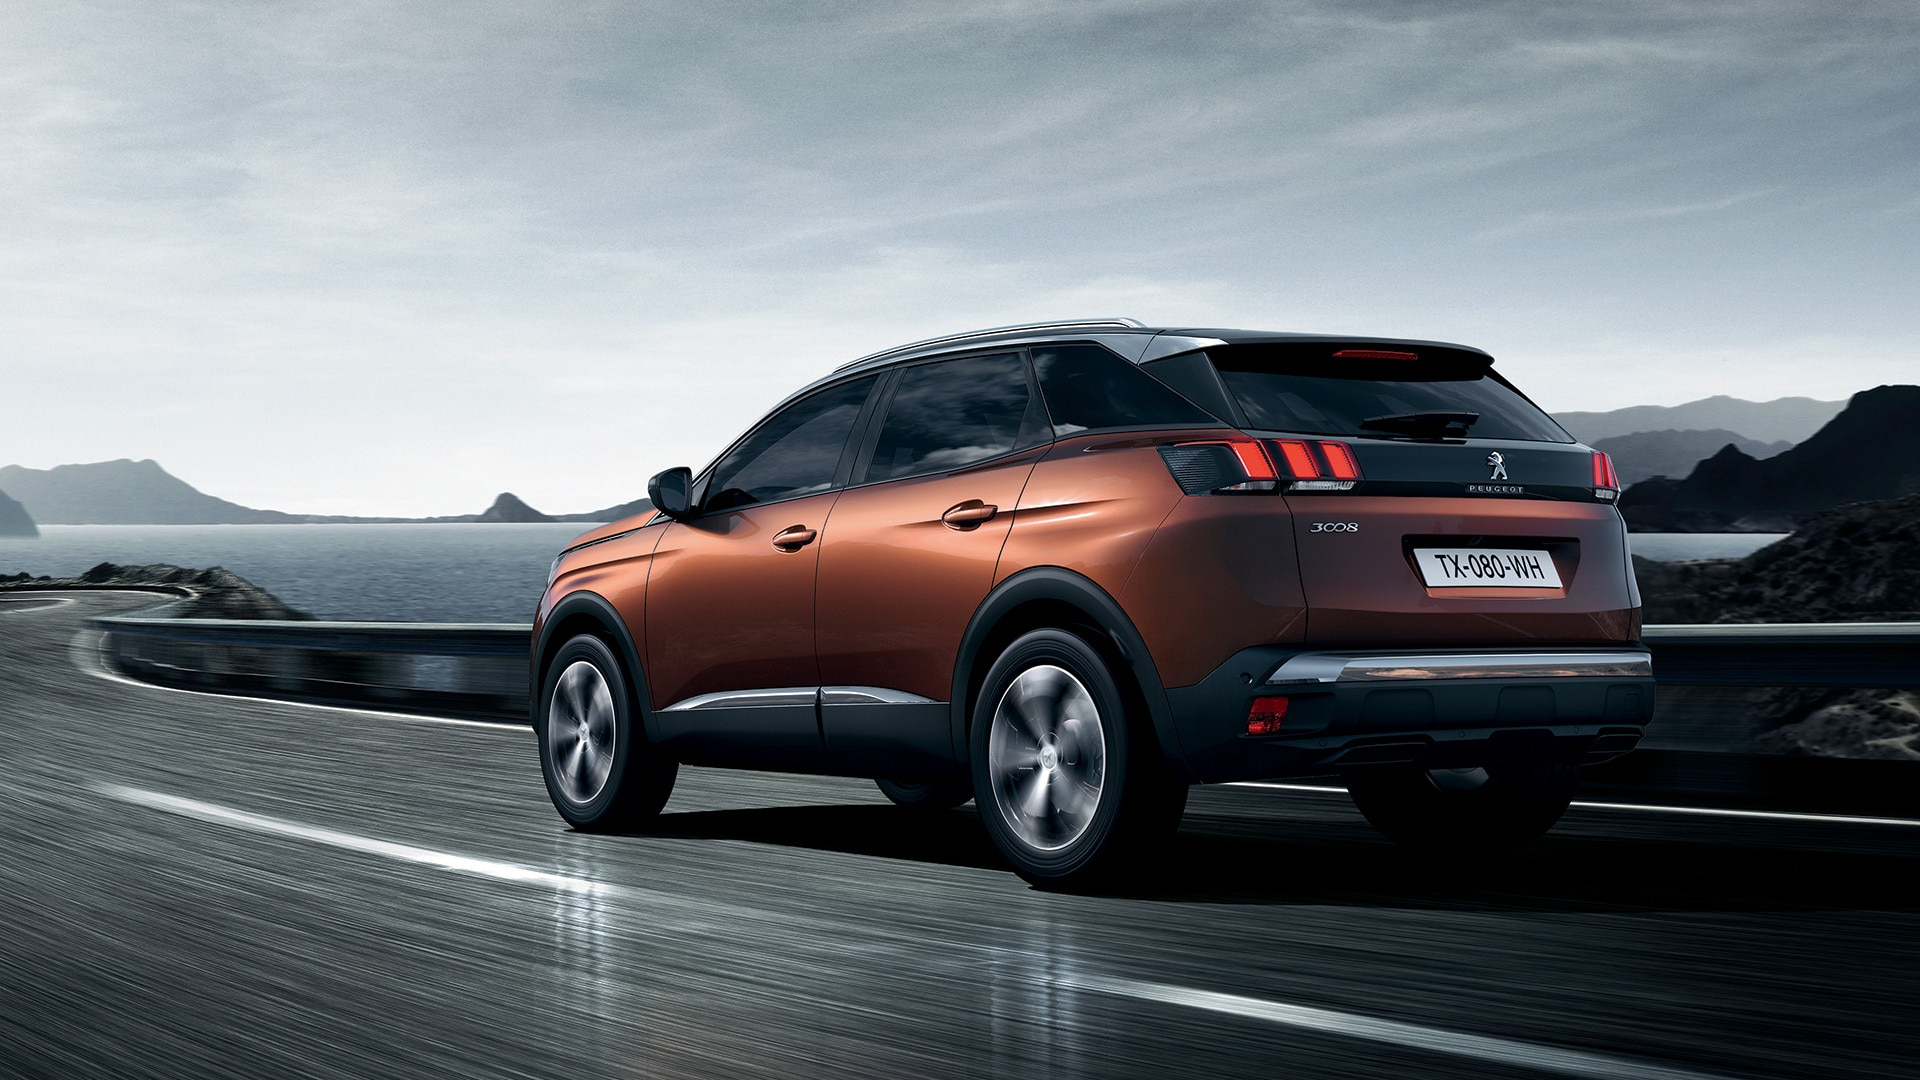 Gt >> PEUGEOT 3008 New Car Showroom | SUV | 2017 European Car of the Year